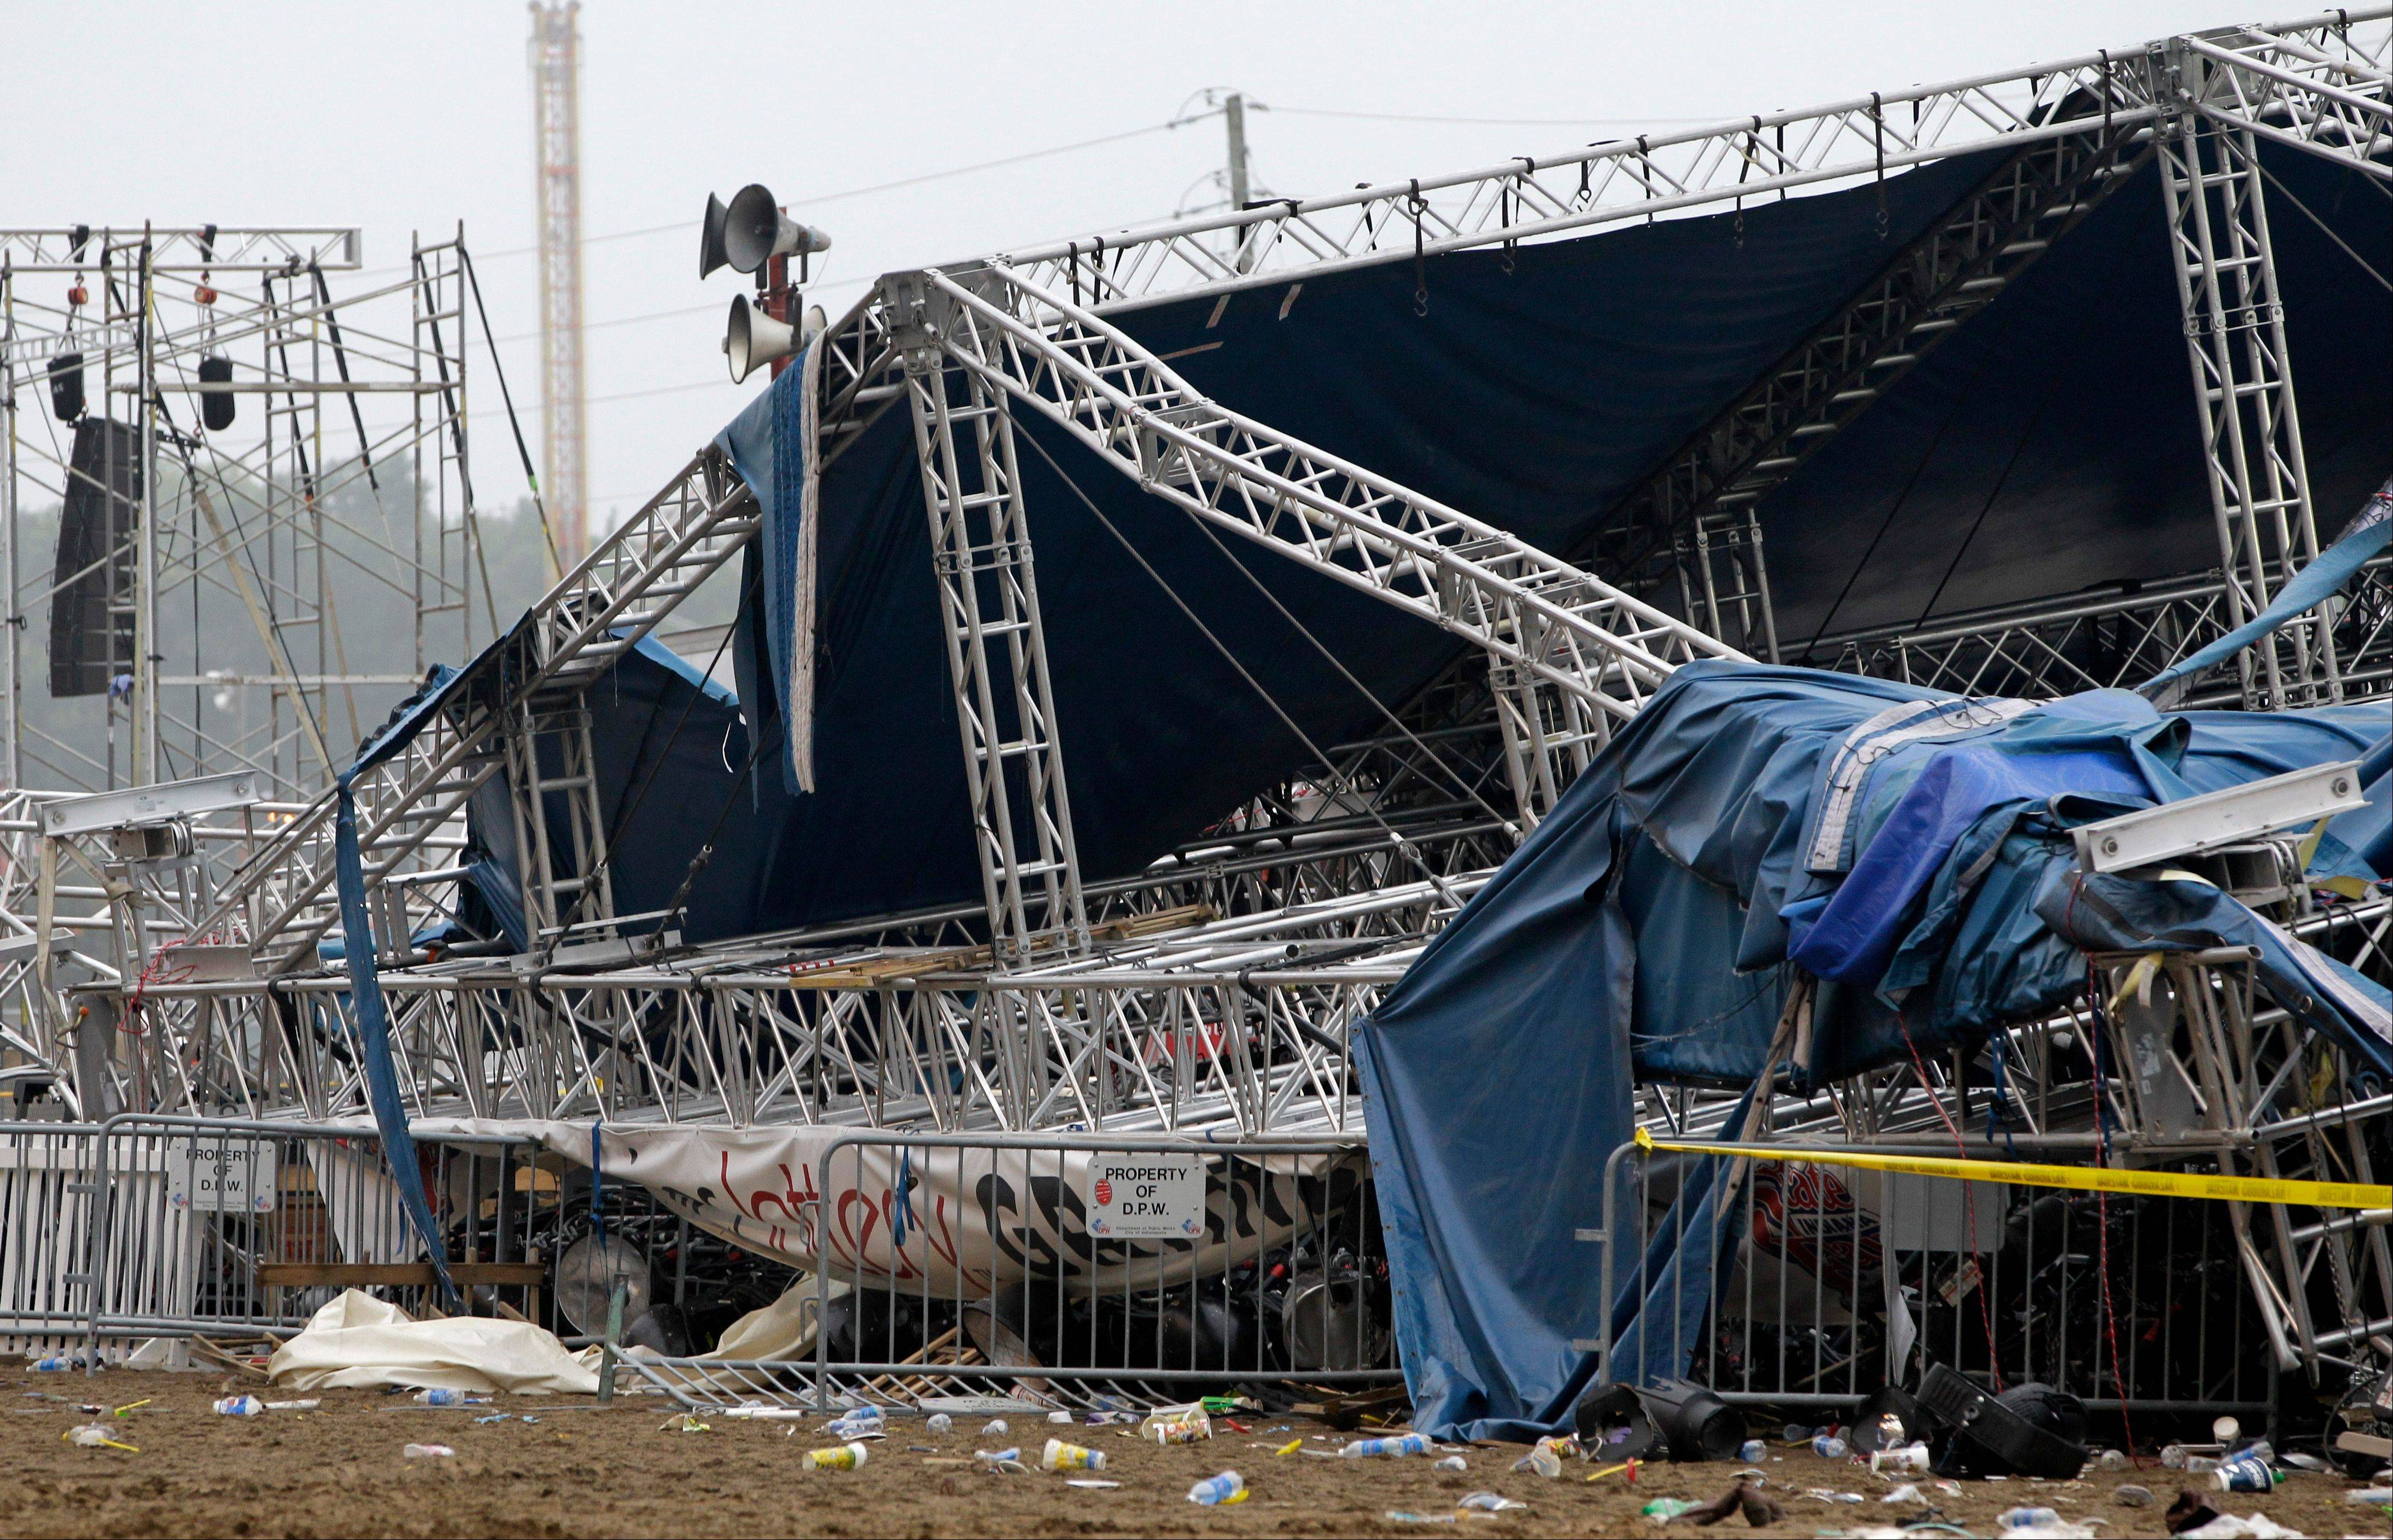 Indiana State Police and authorities survey the collapsed rigging and Sugarland stage on the infield at the Indiana State Fair in Indianapolis, Sunday, Aug. 14, 2011. Five people died in the stage collapse.